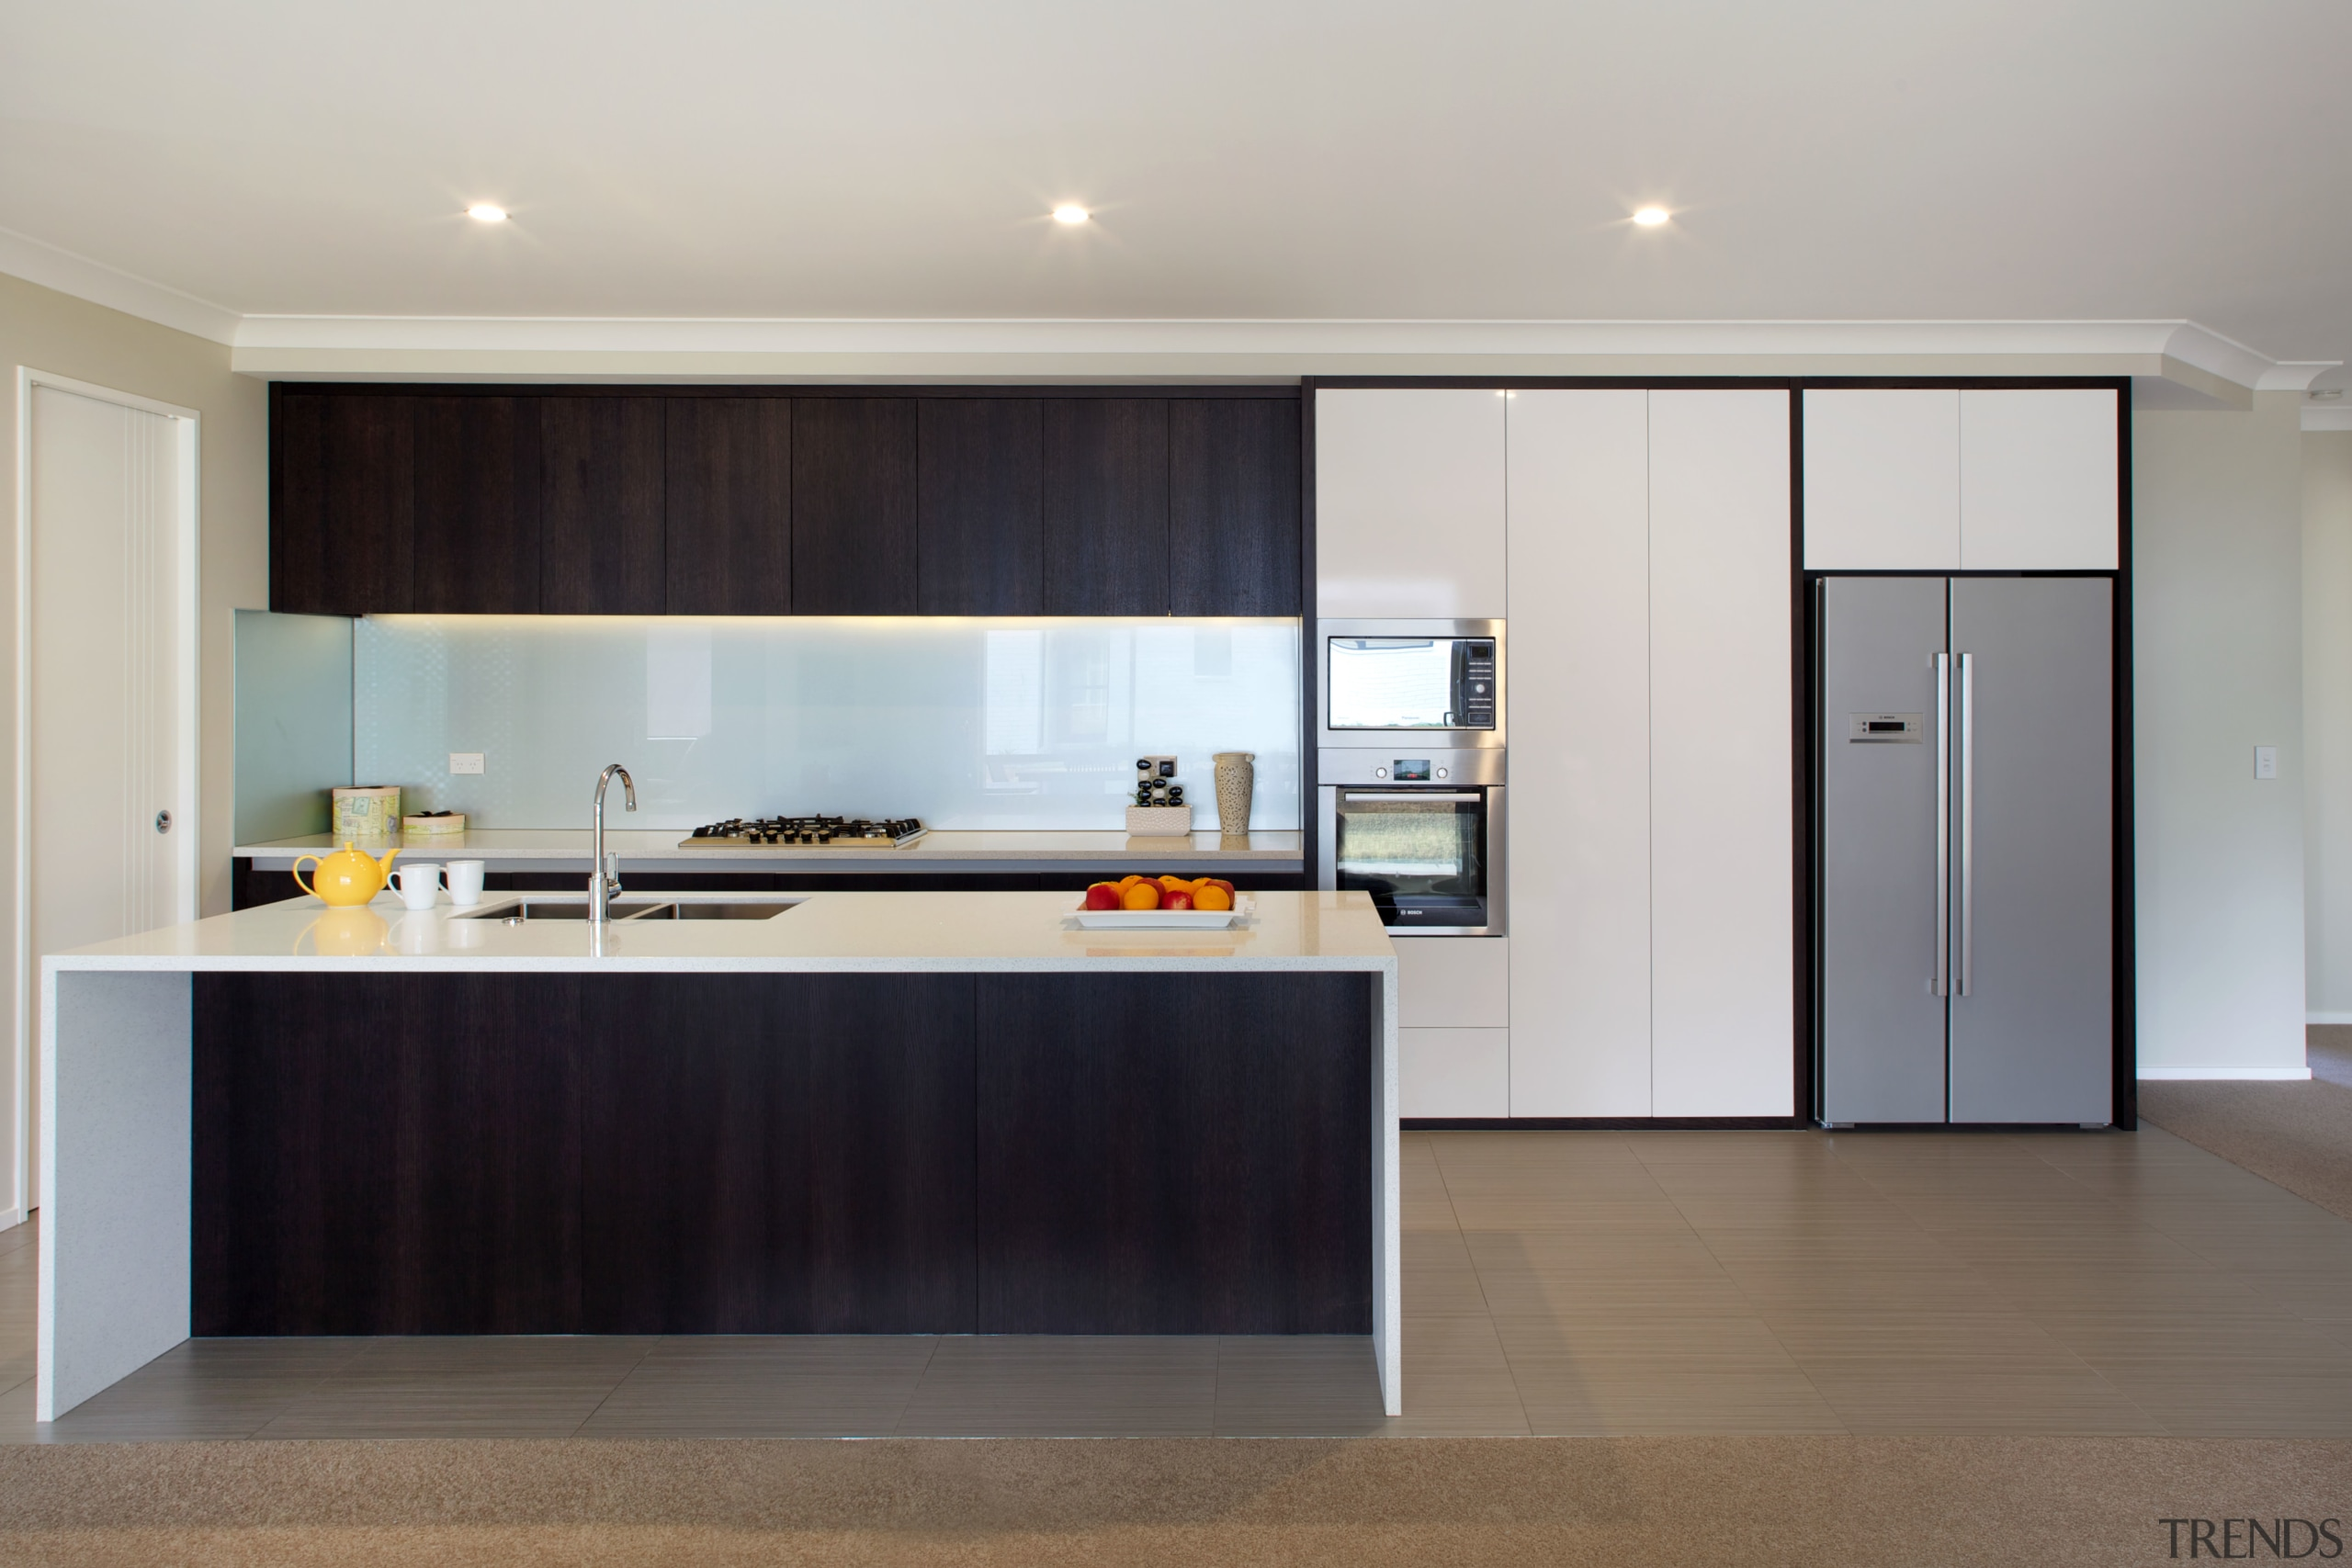 A two-tone colour palette brings a touch of architecture, cabinetry, countertop, floor, flooring, interior design, kitchen, real estate, room, gray